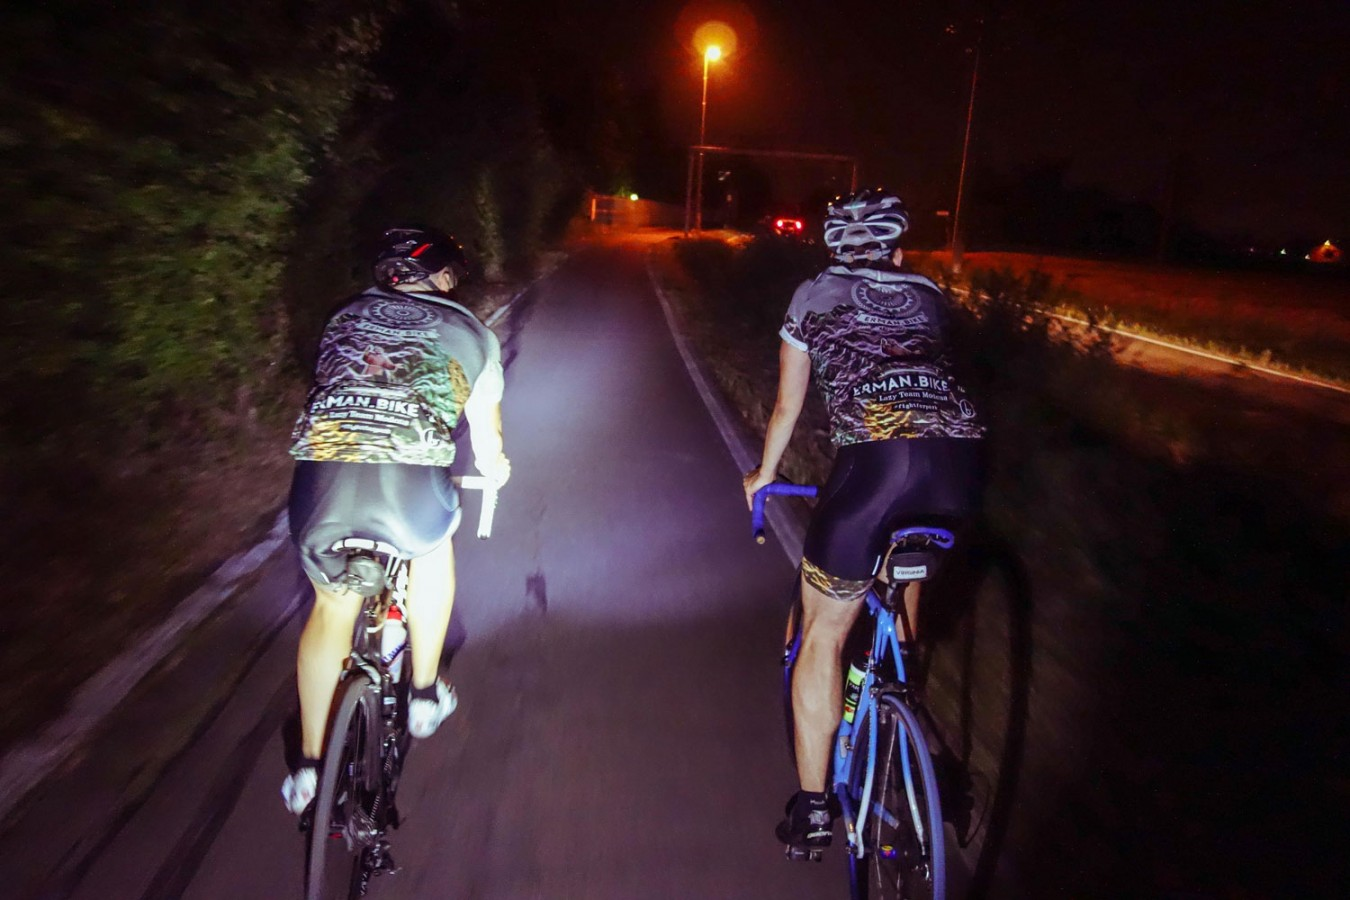 erman_bike_sunset_ride_night_ride